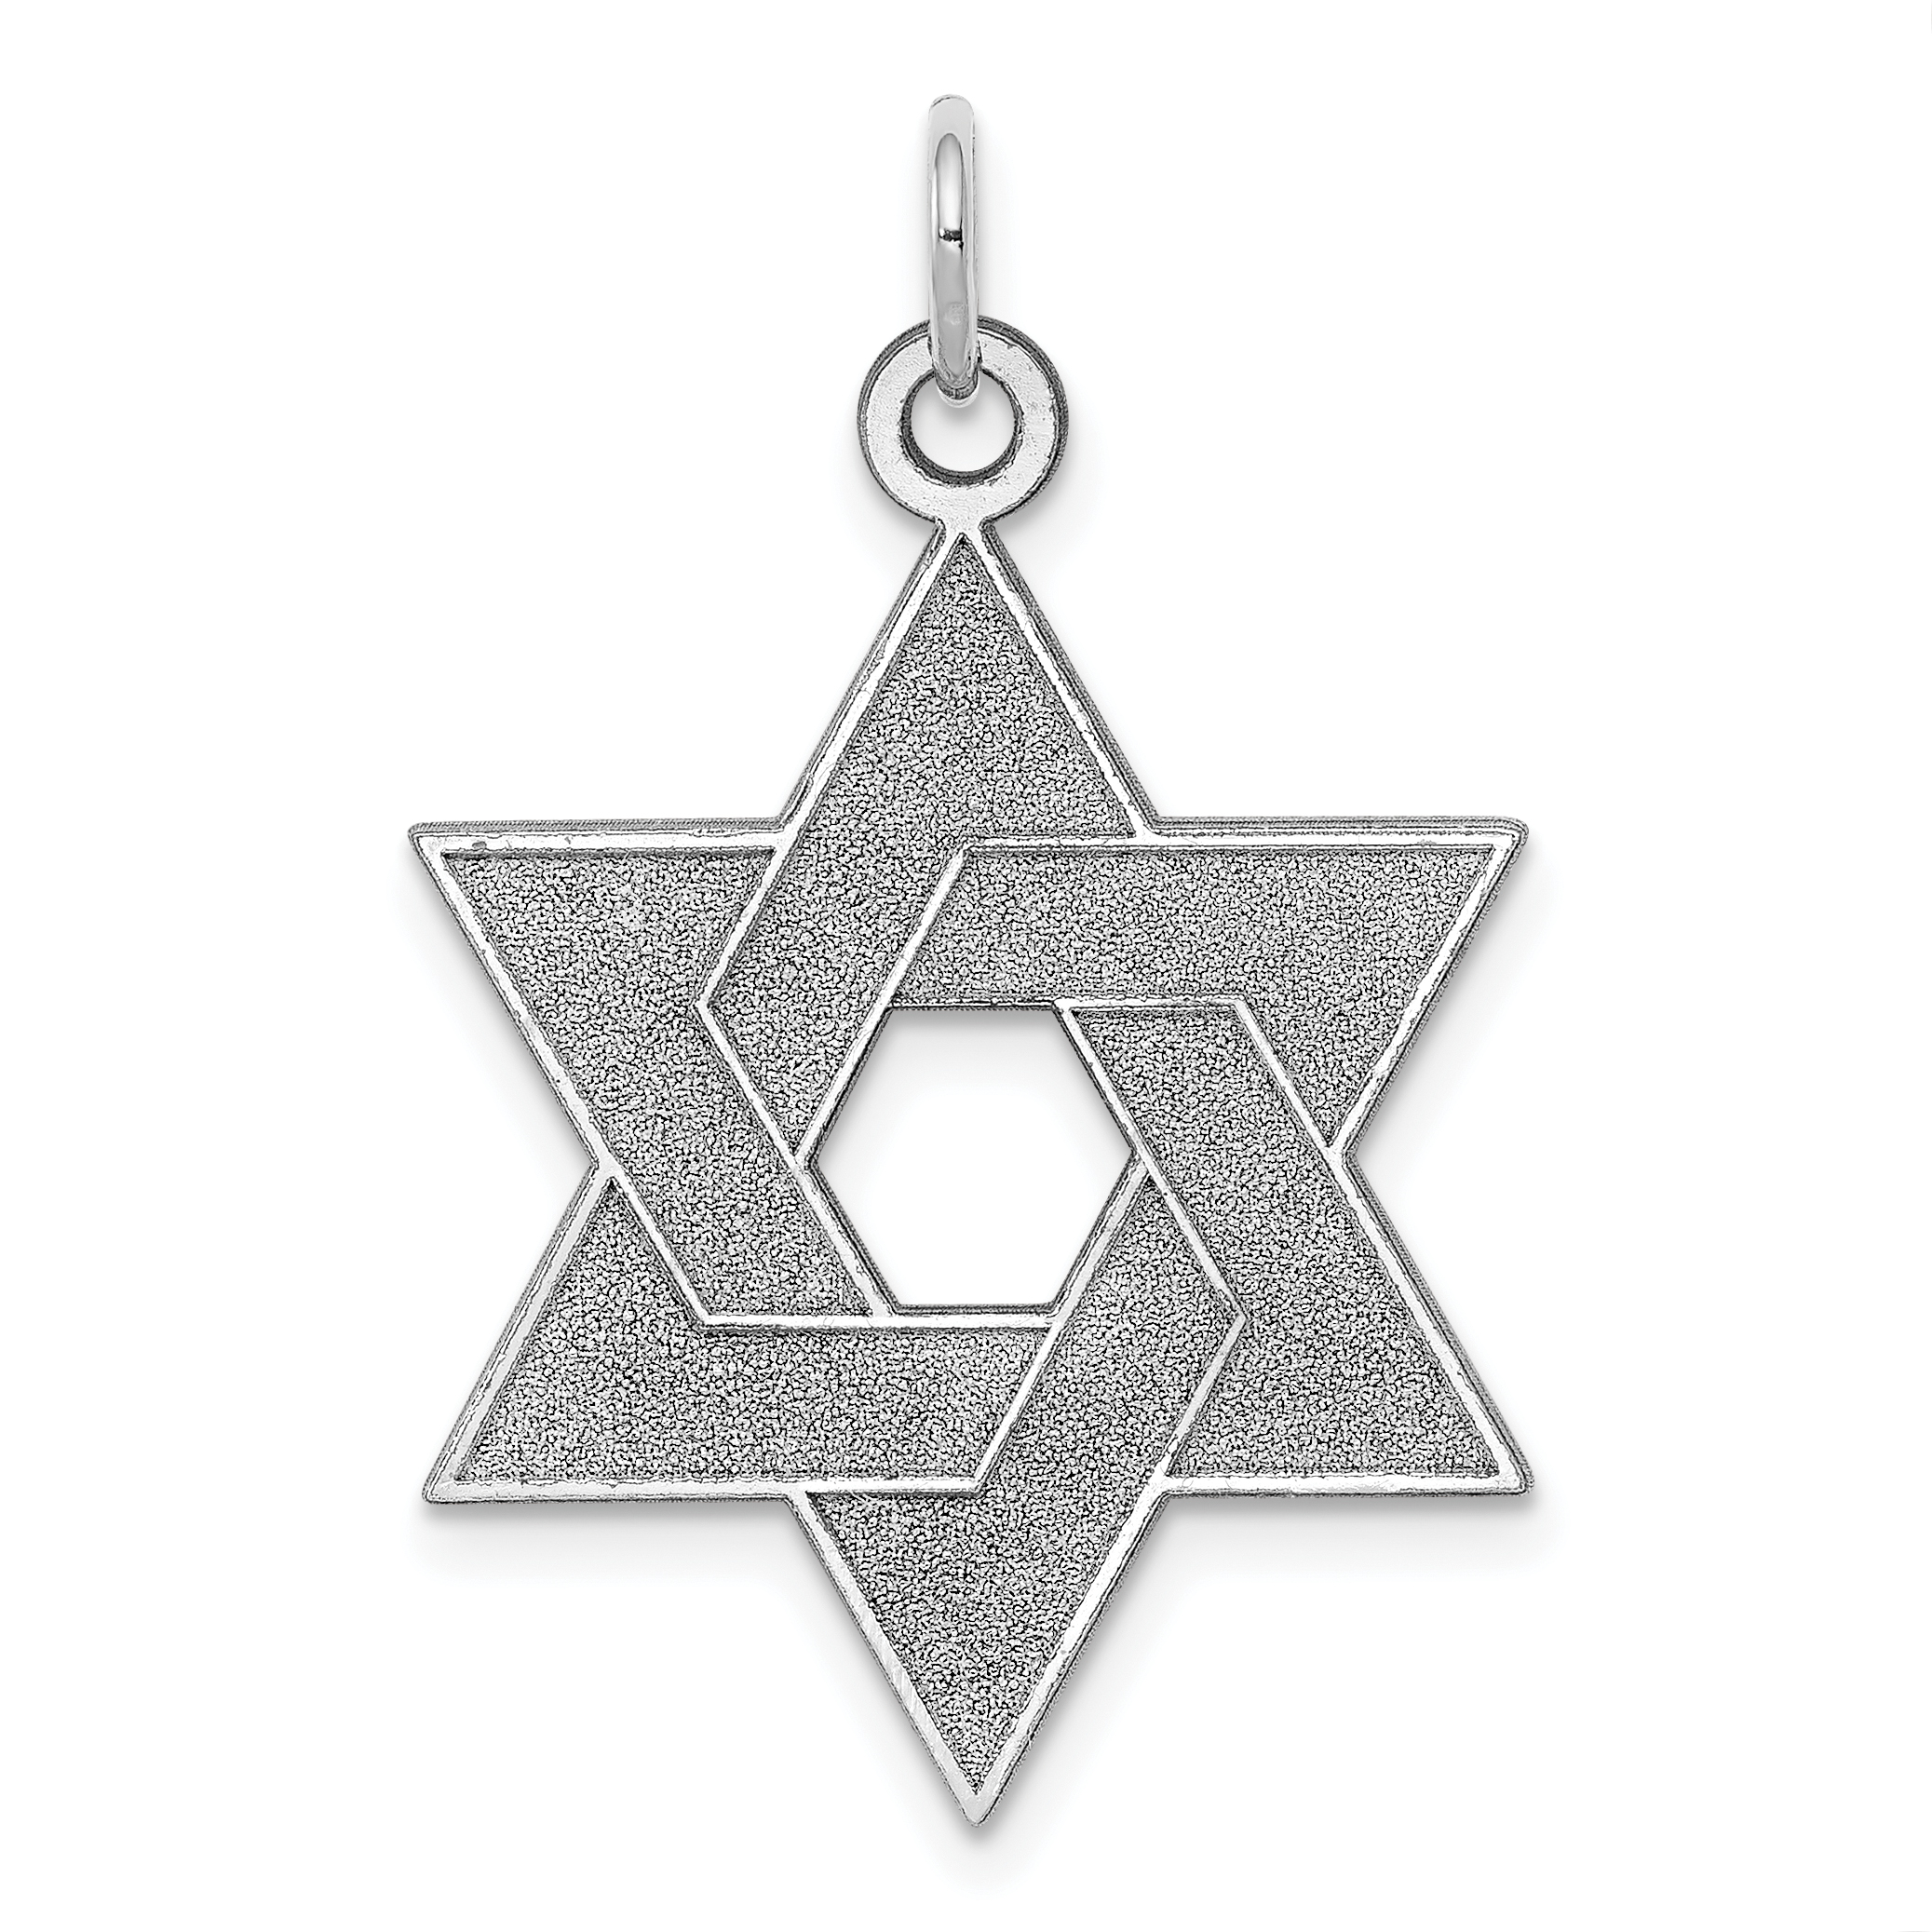 14k Yellow Gold Engraved Jewish Jewelry Star Of David Cross Religious Pendant Charm Necklace Judaica Fine Jewelry Gifts For Women For Her